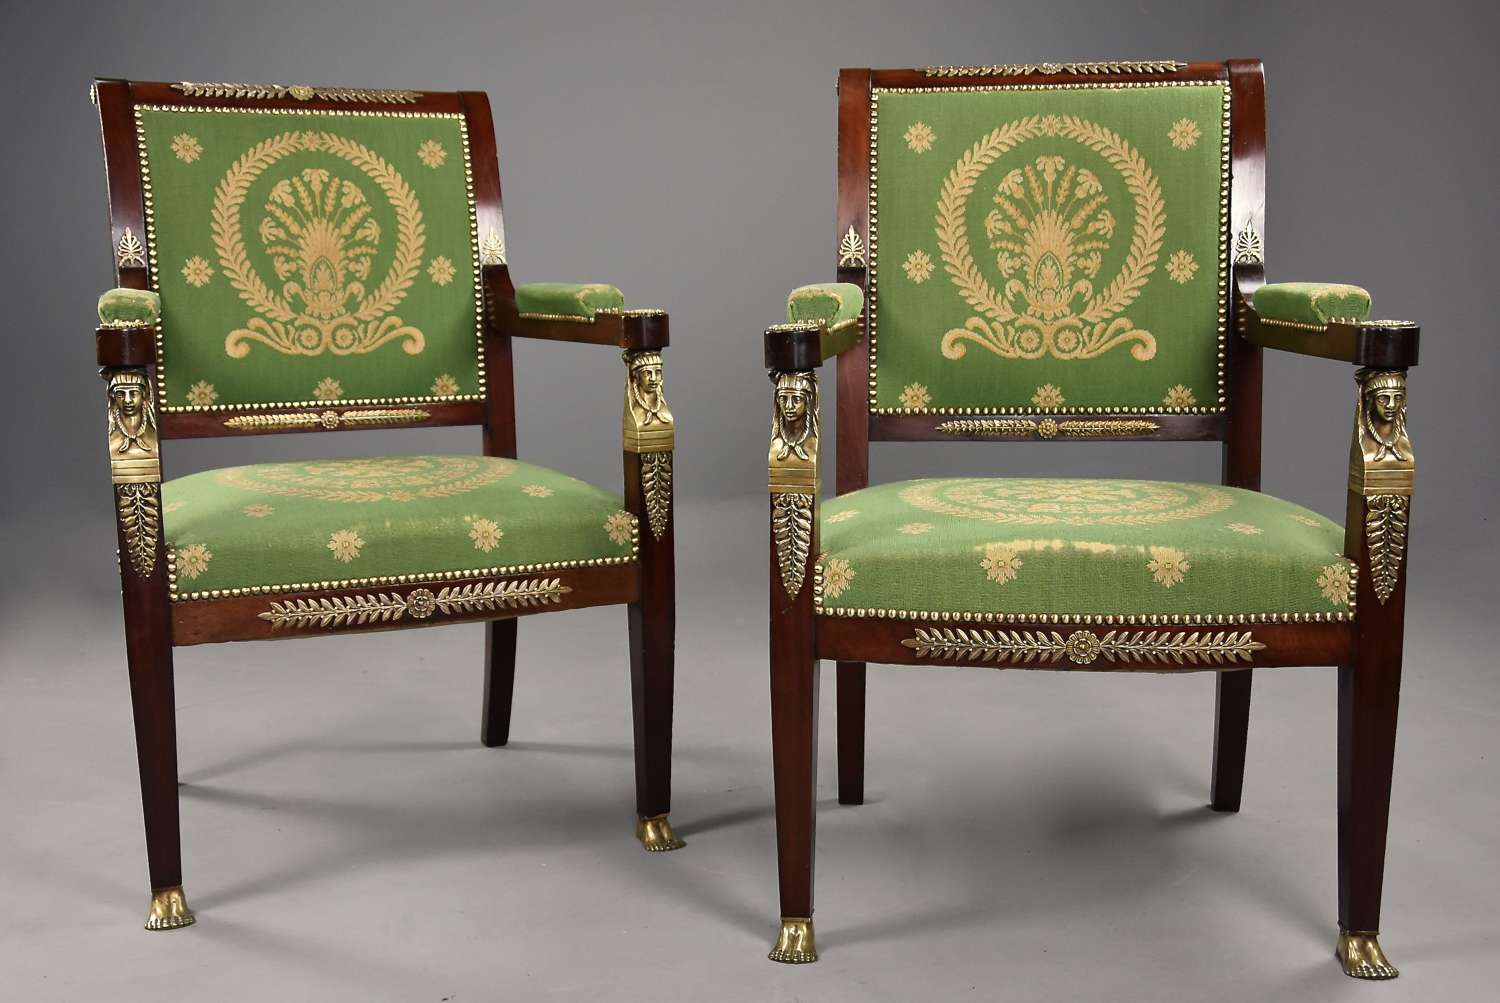 Pair of late 19thc French Empire style mahogany fauteuils